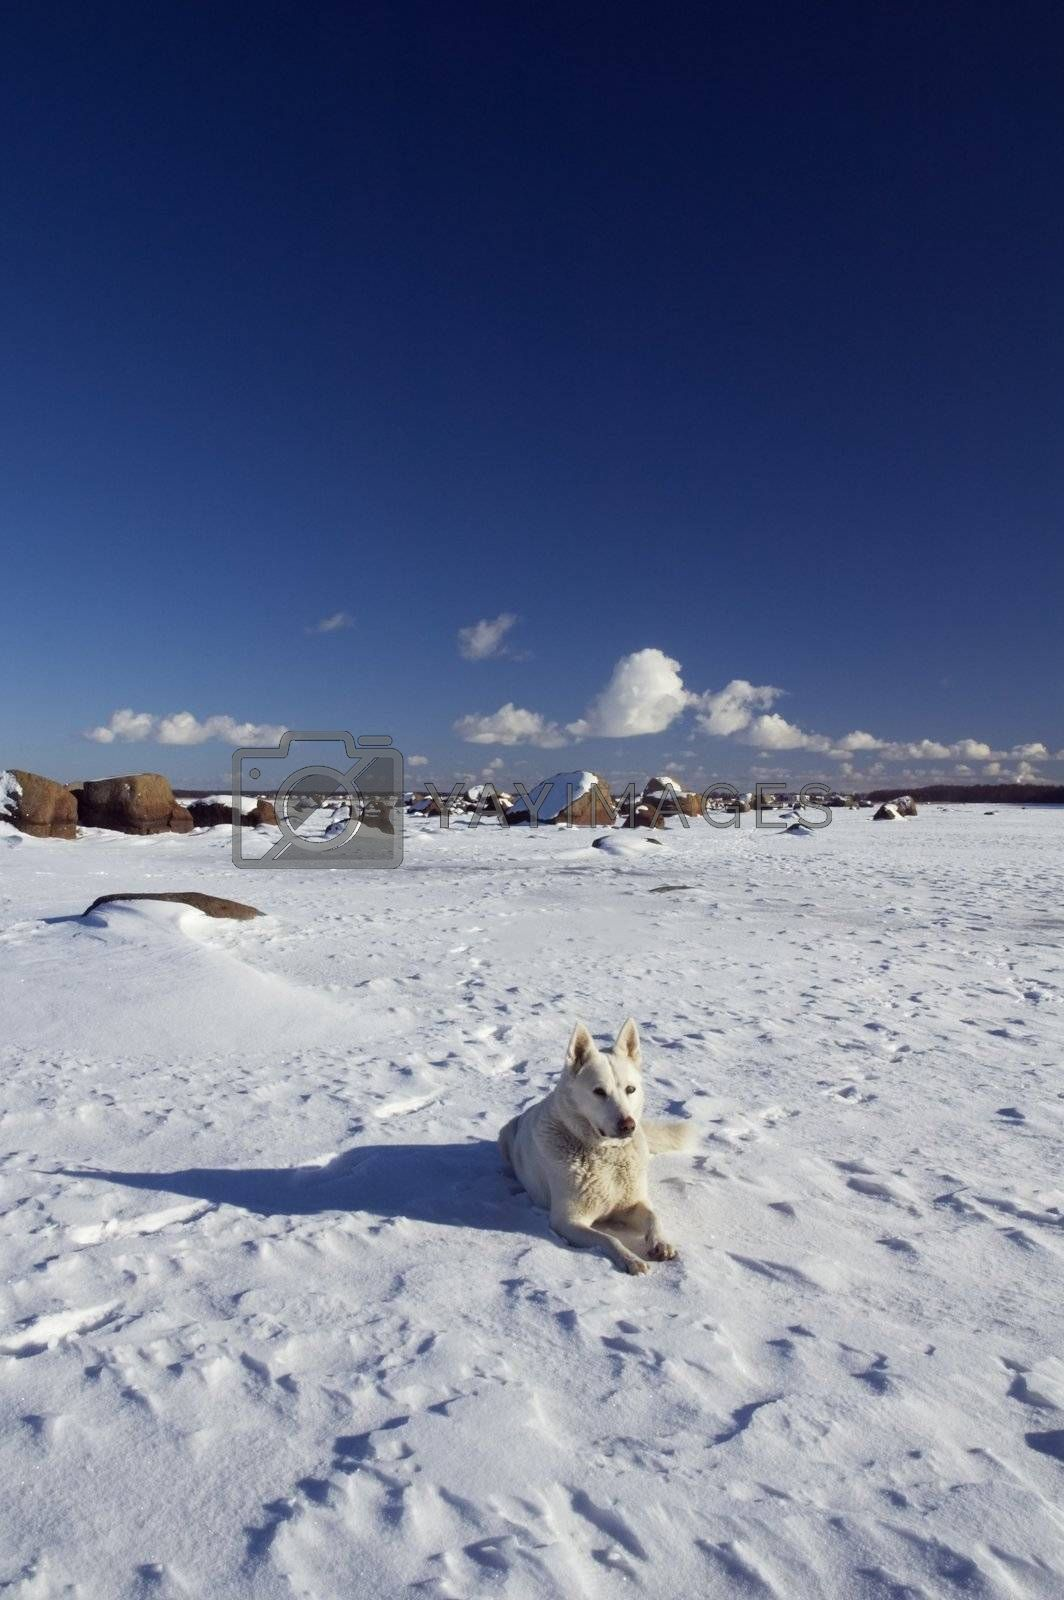 Winter landscape with a white dog